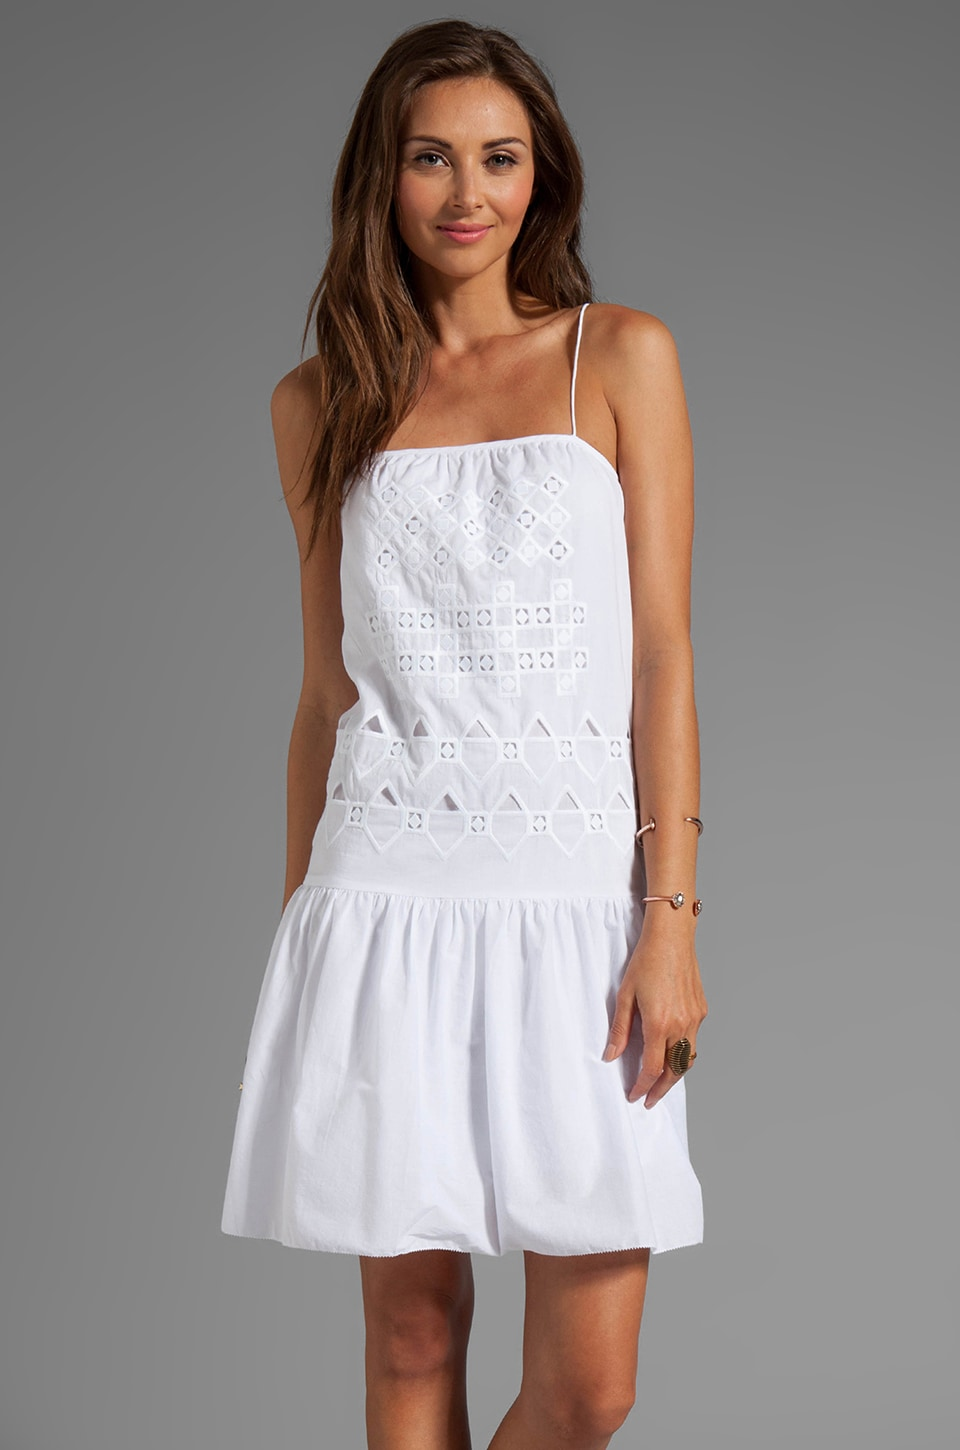 Tibi Eyelet Embroidery Strappy Dress in White